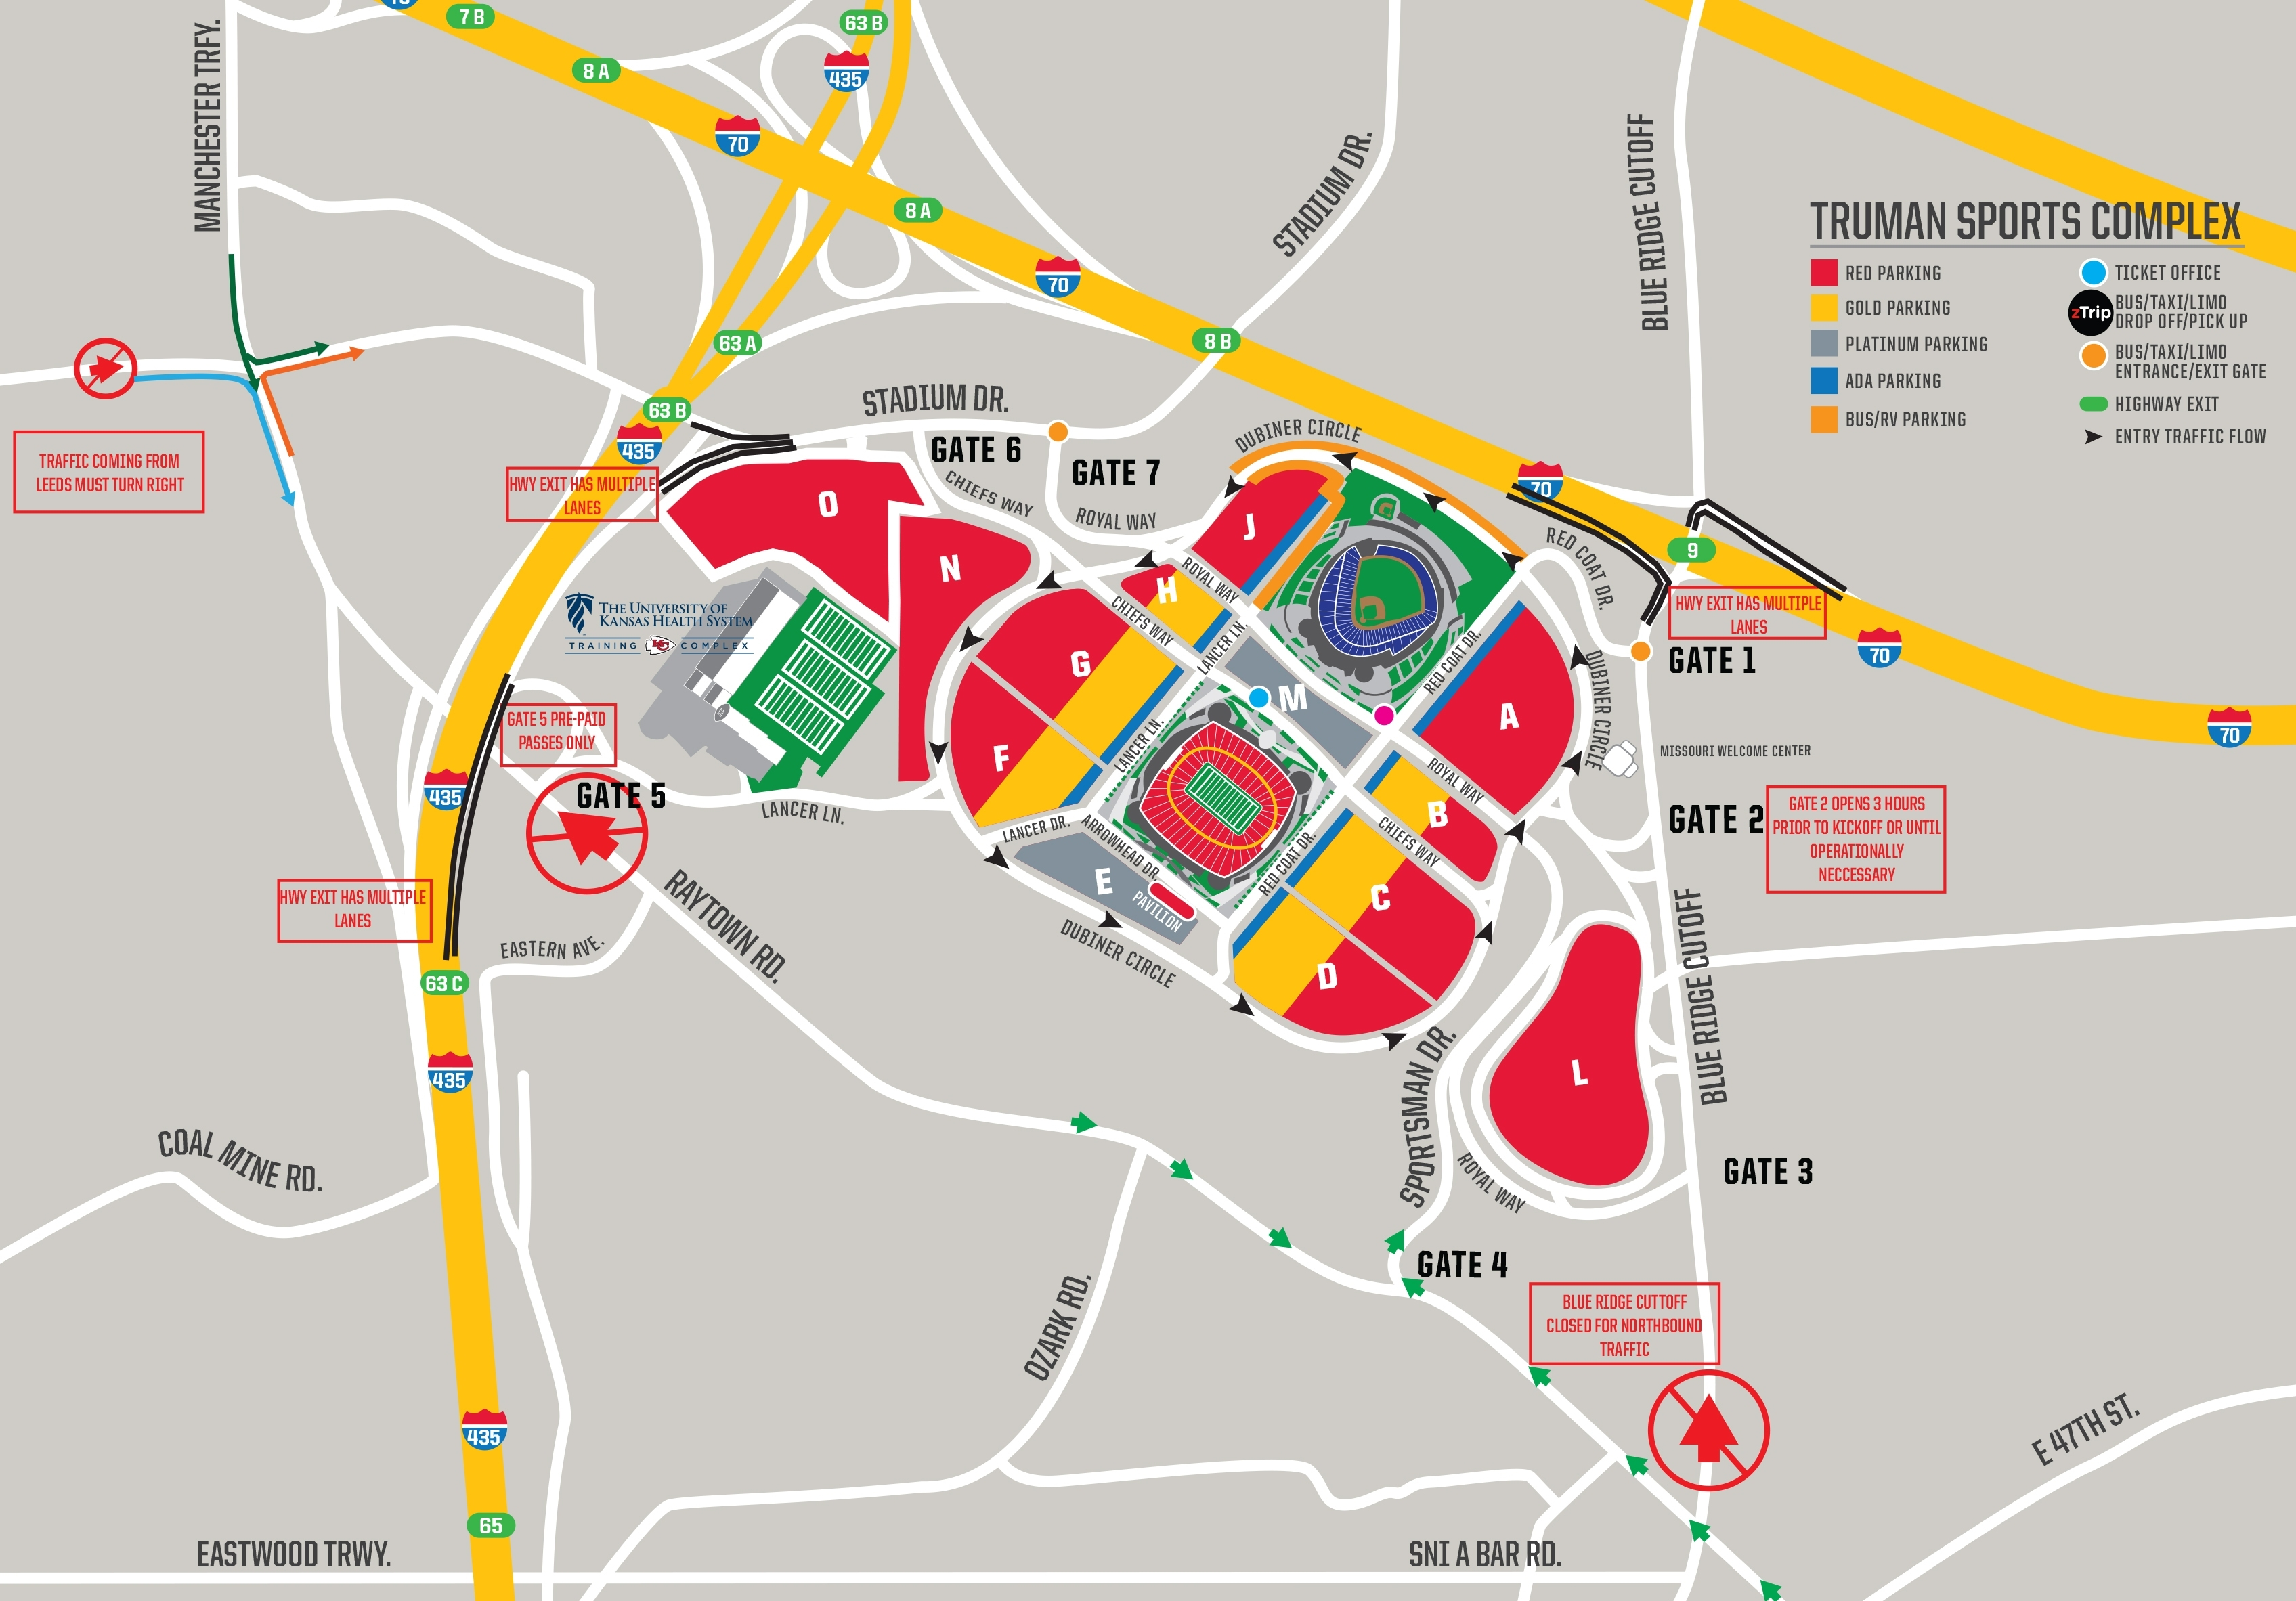 Chiefs Parking & Tailgating - Directions & Maps | Kansas in Super Bowl Game Day Map